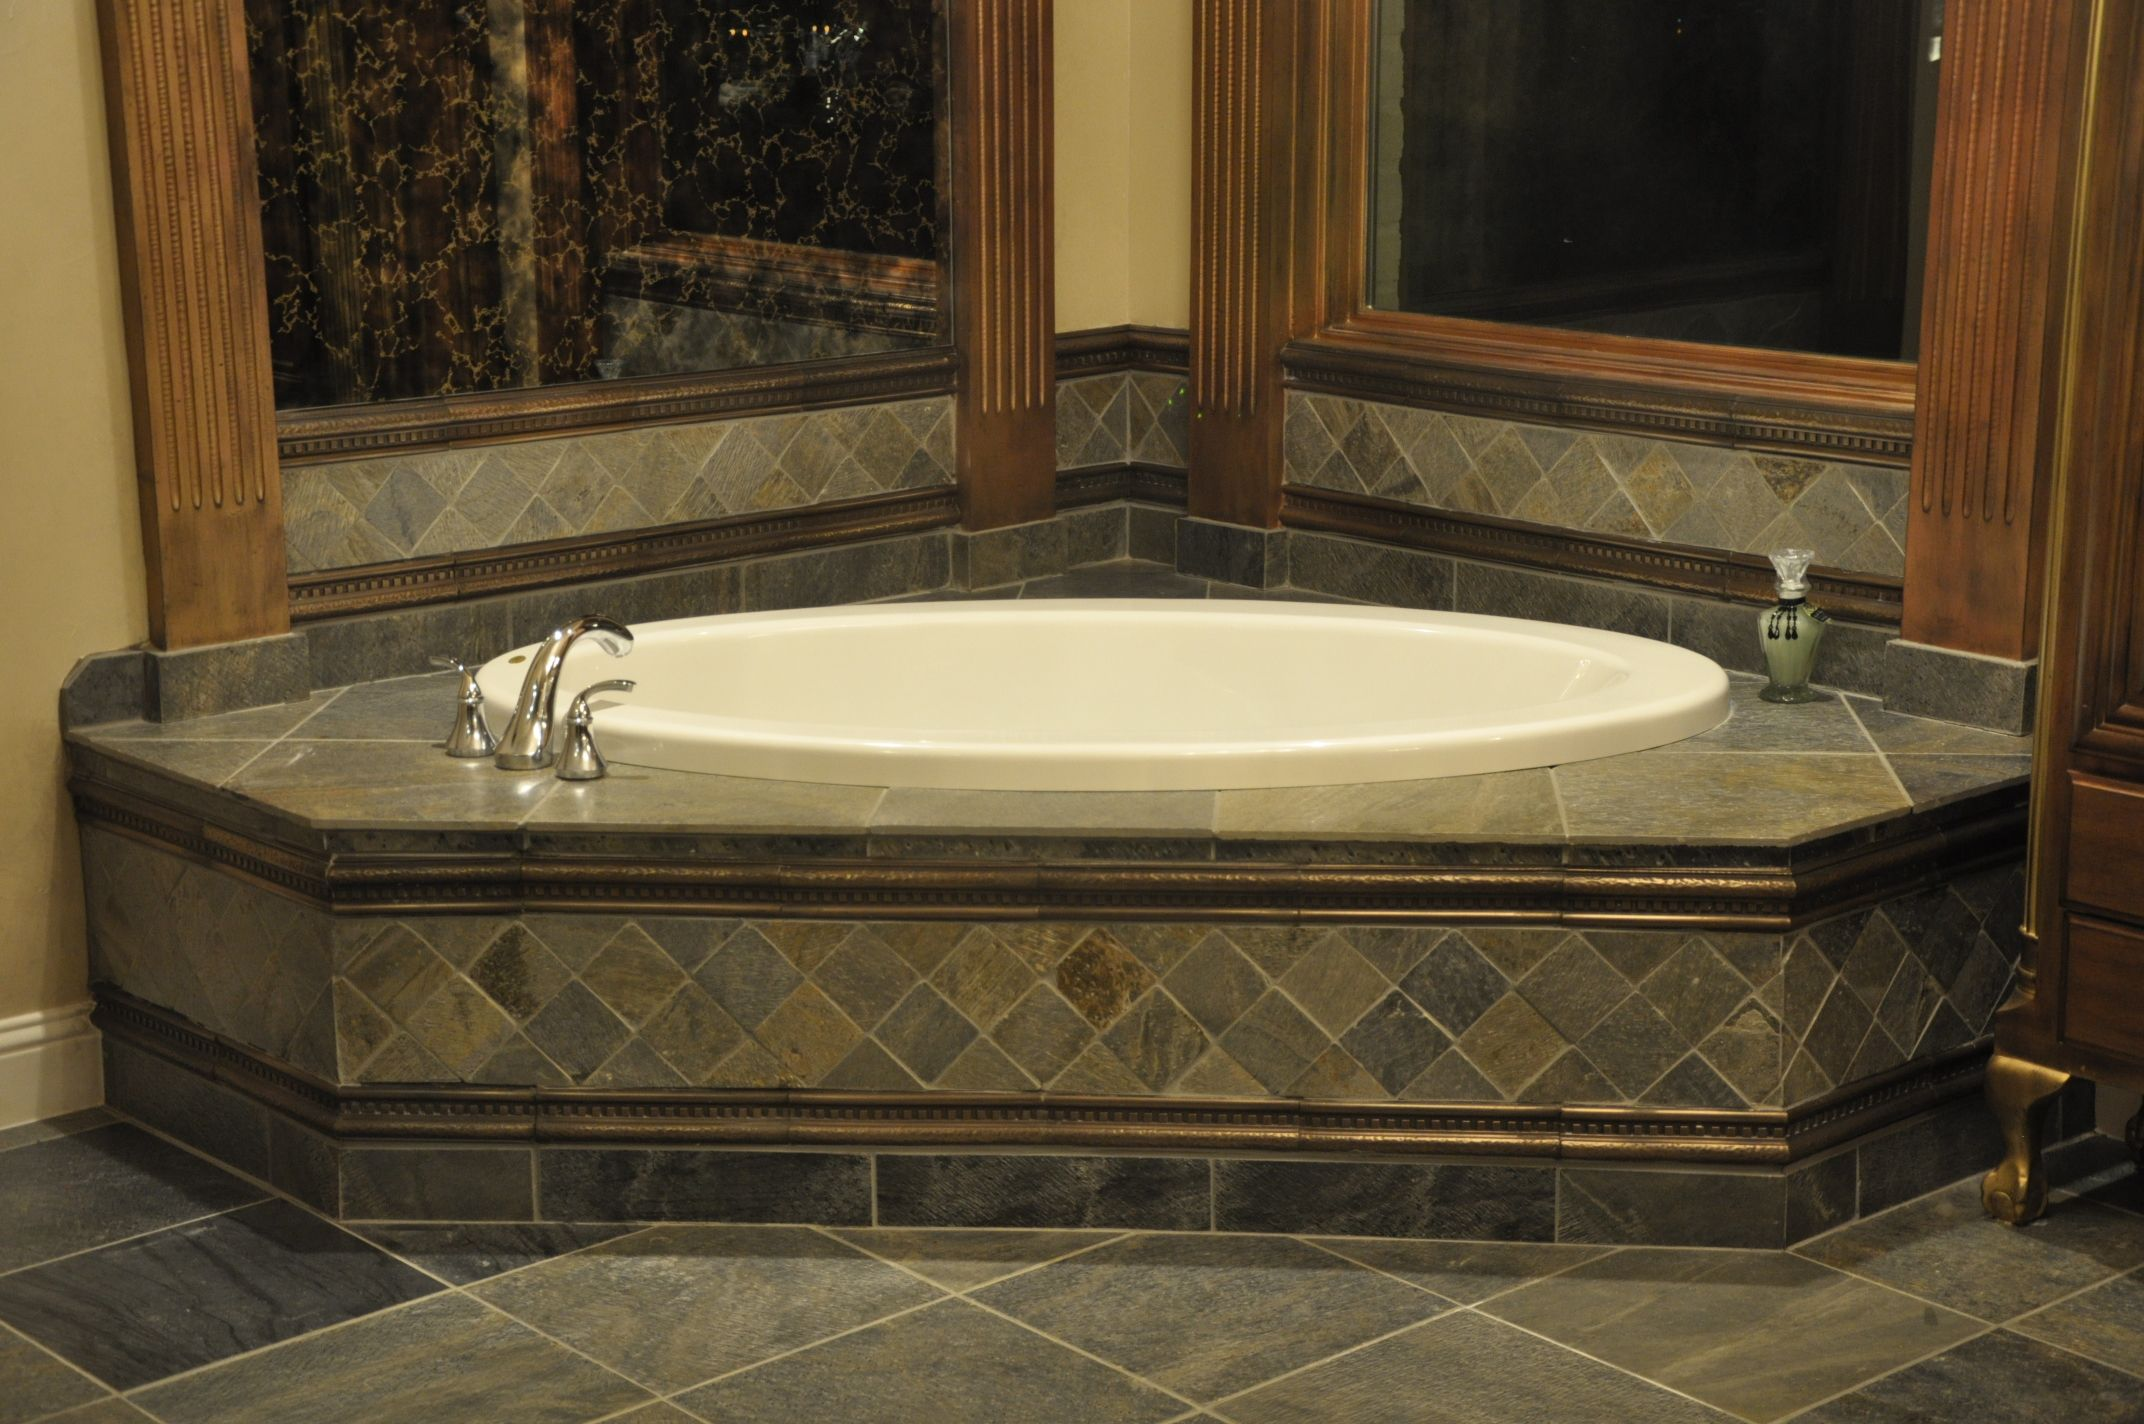 Image detail for -Tile tub surround with diamond pattern ...